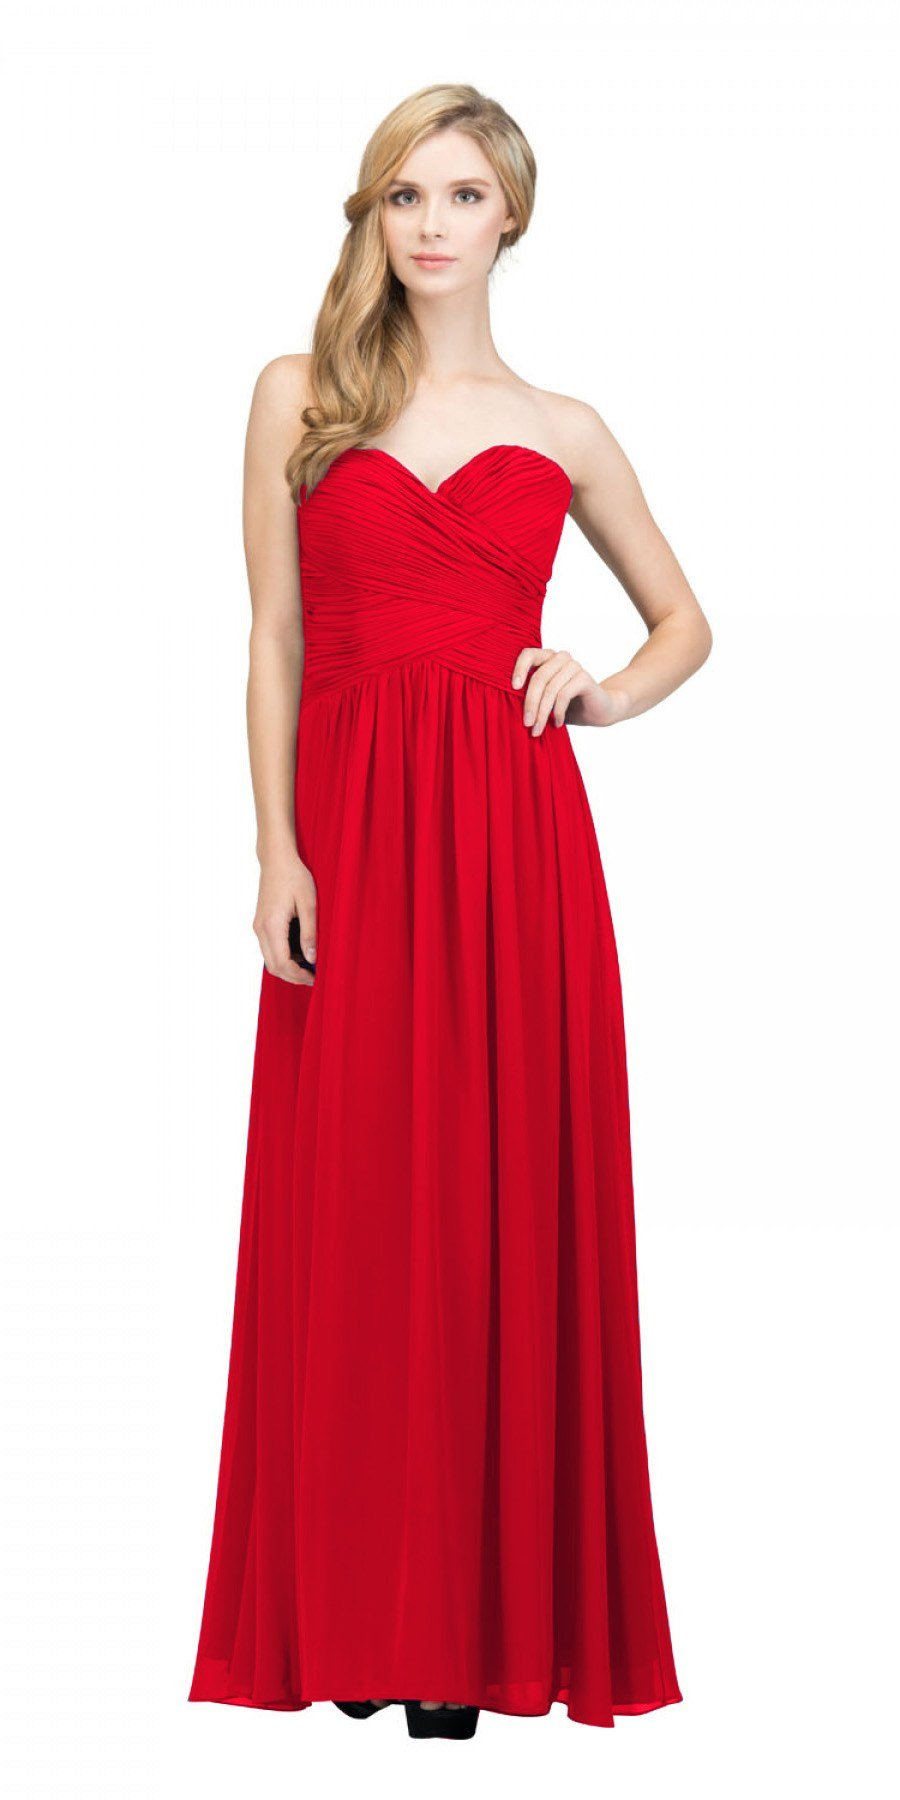 a69caaa2014 Red And White Bridesmaid Dresses - Gomes Weine AG